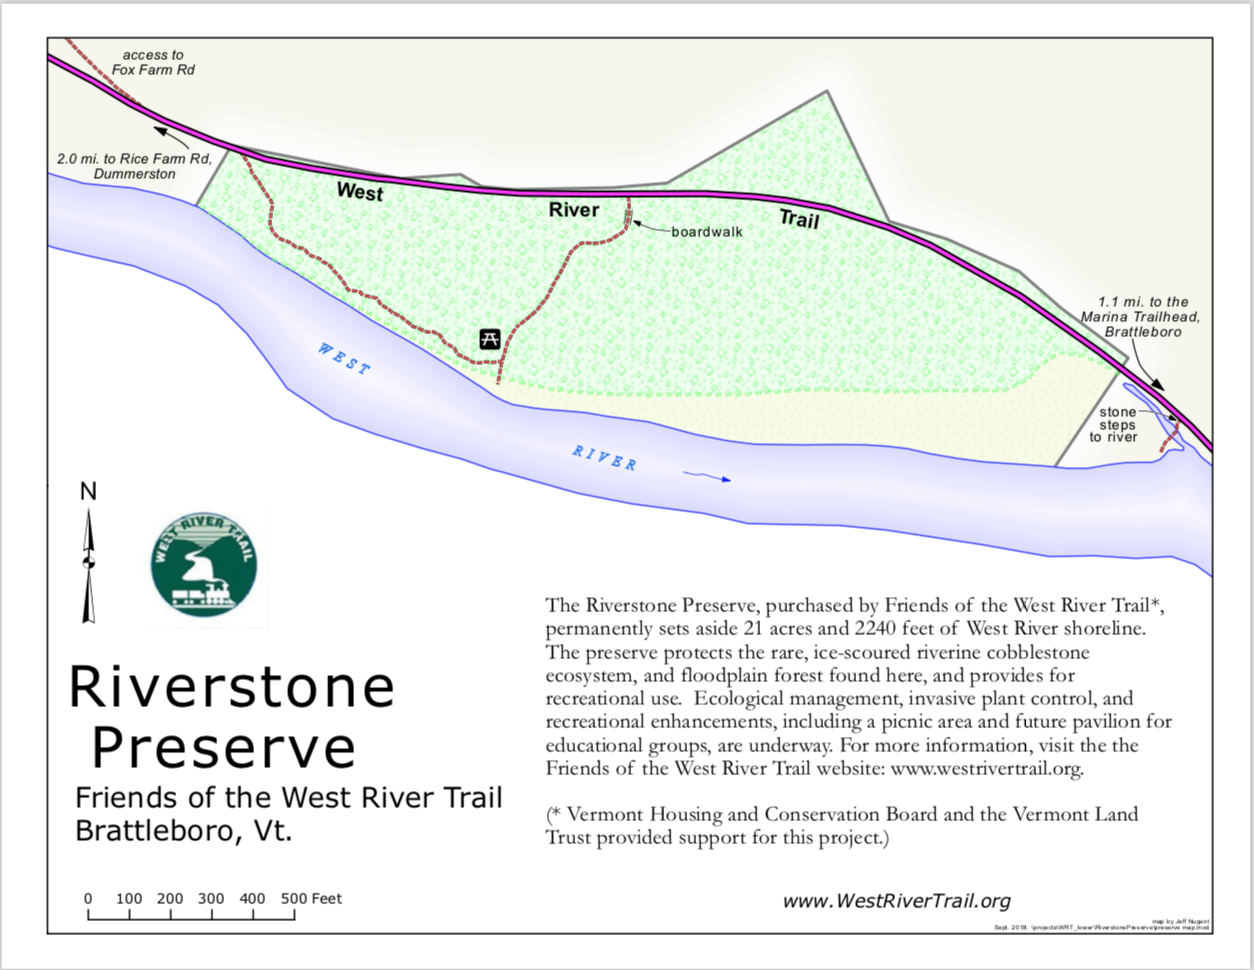 riverstone-preserve-wrt-sept-2018-jeff-nugent